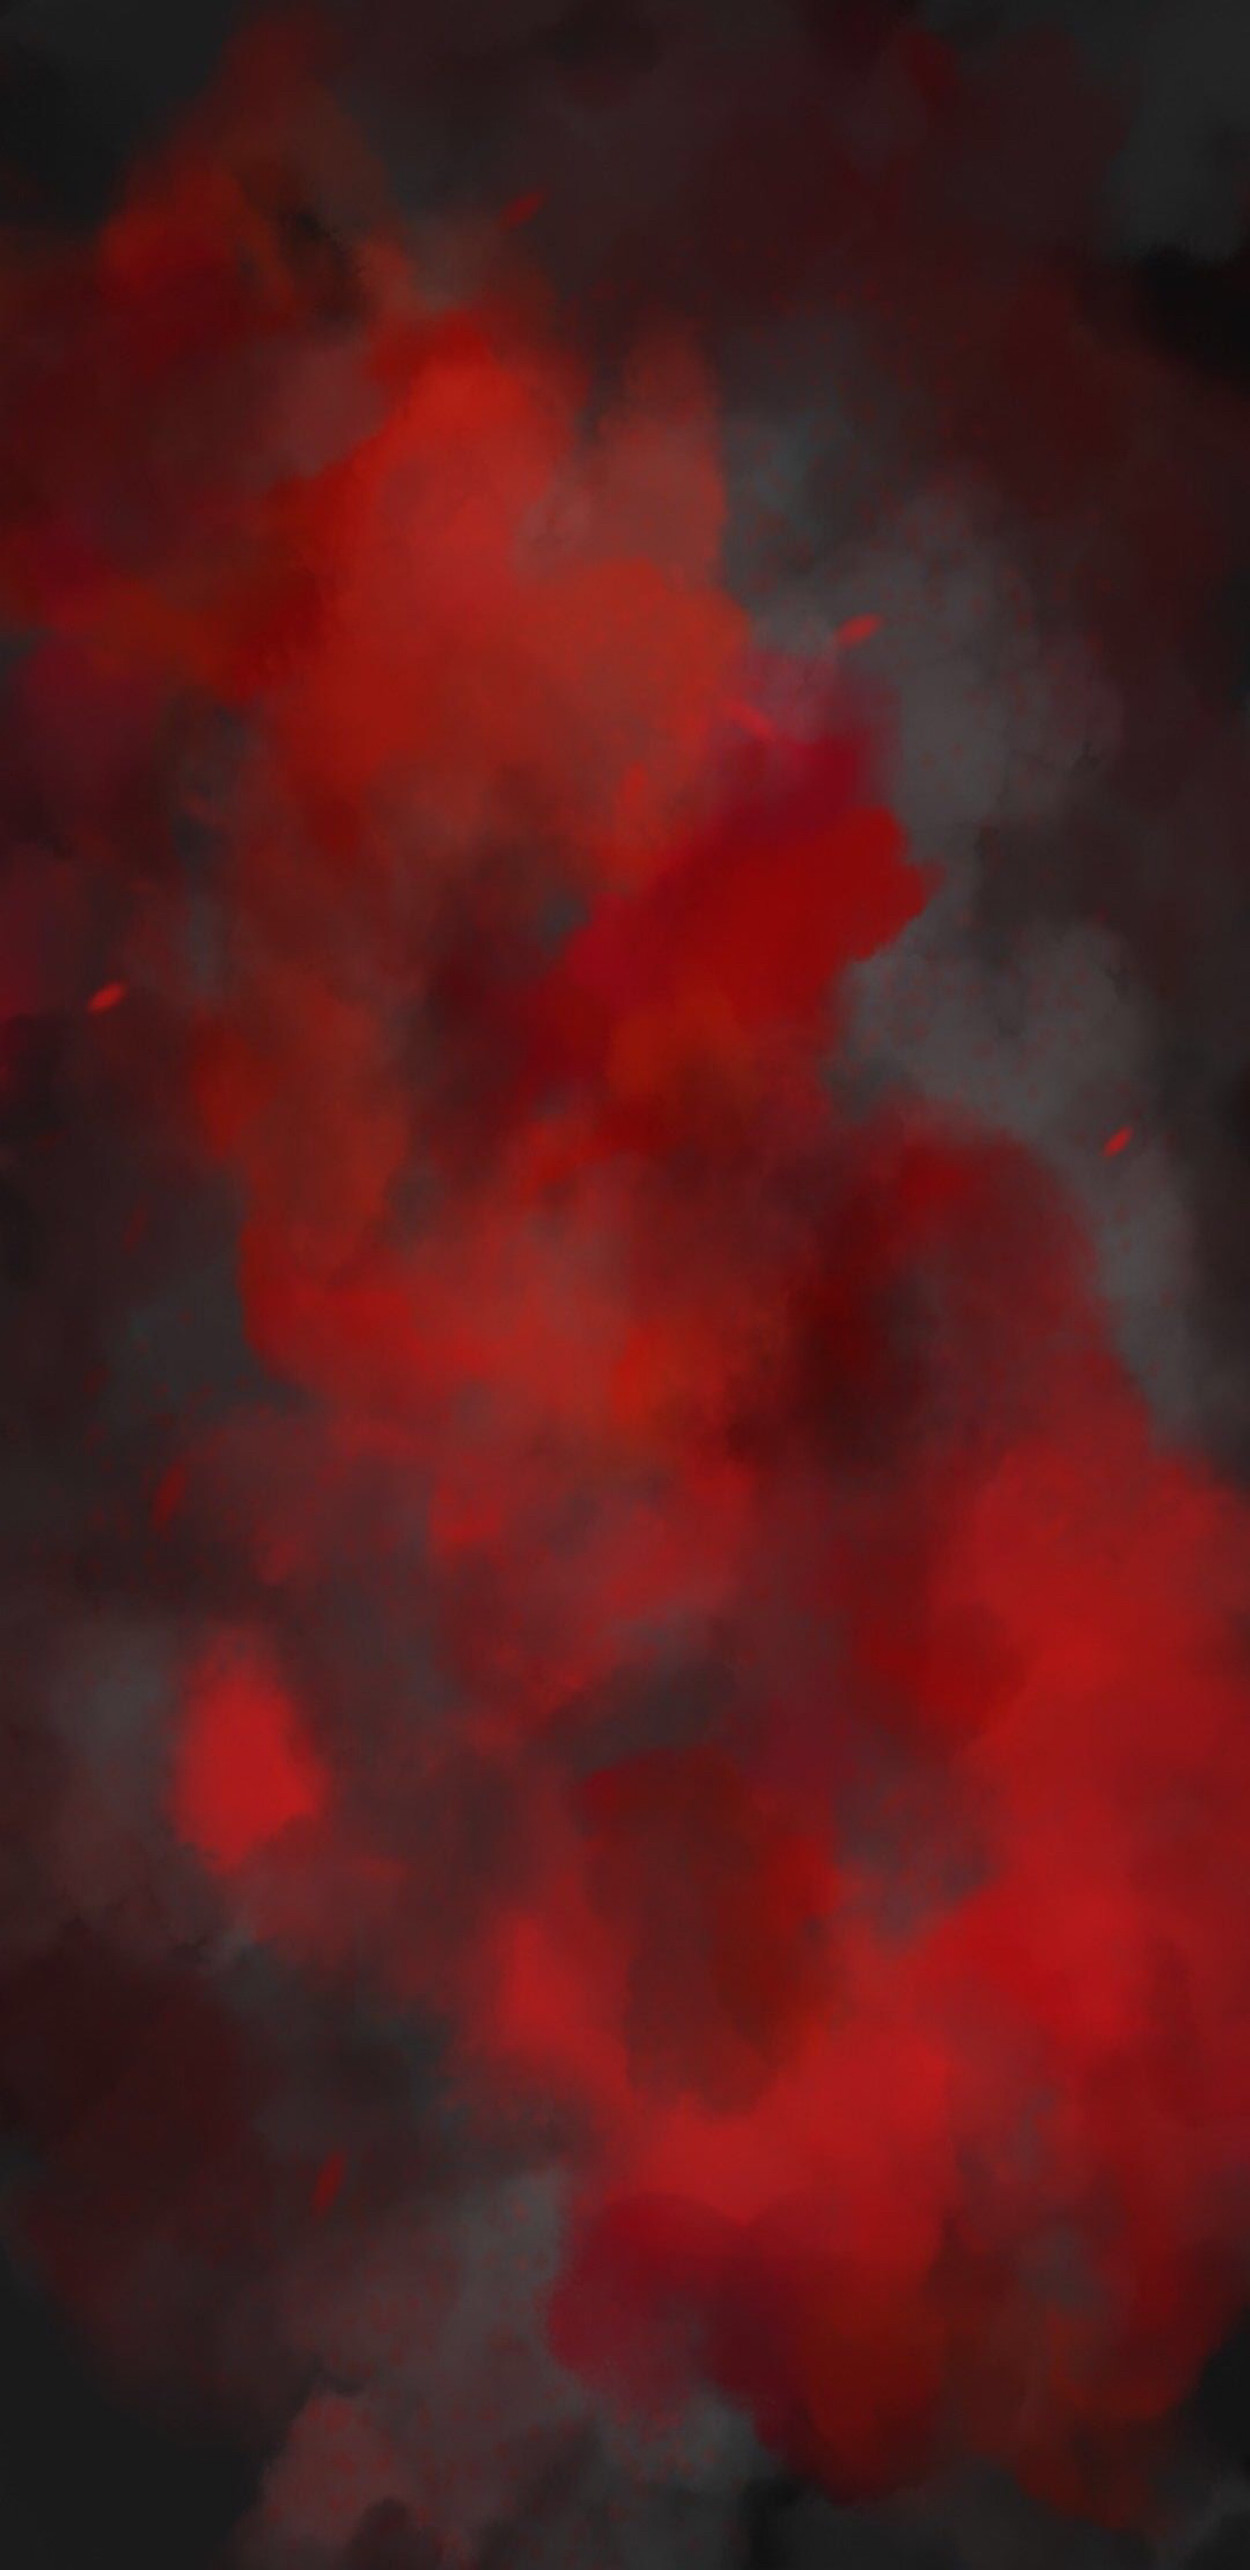 Red, dark, blood,abstract, wallpaper, galaxy, clean, beauty,